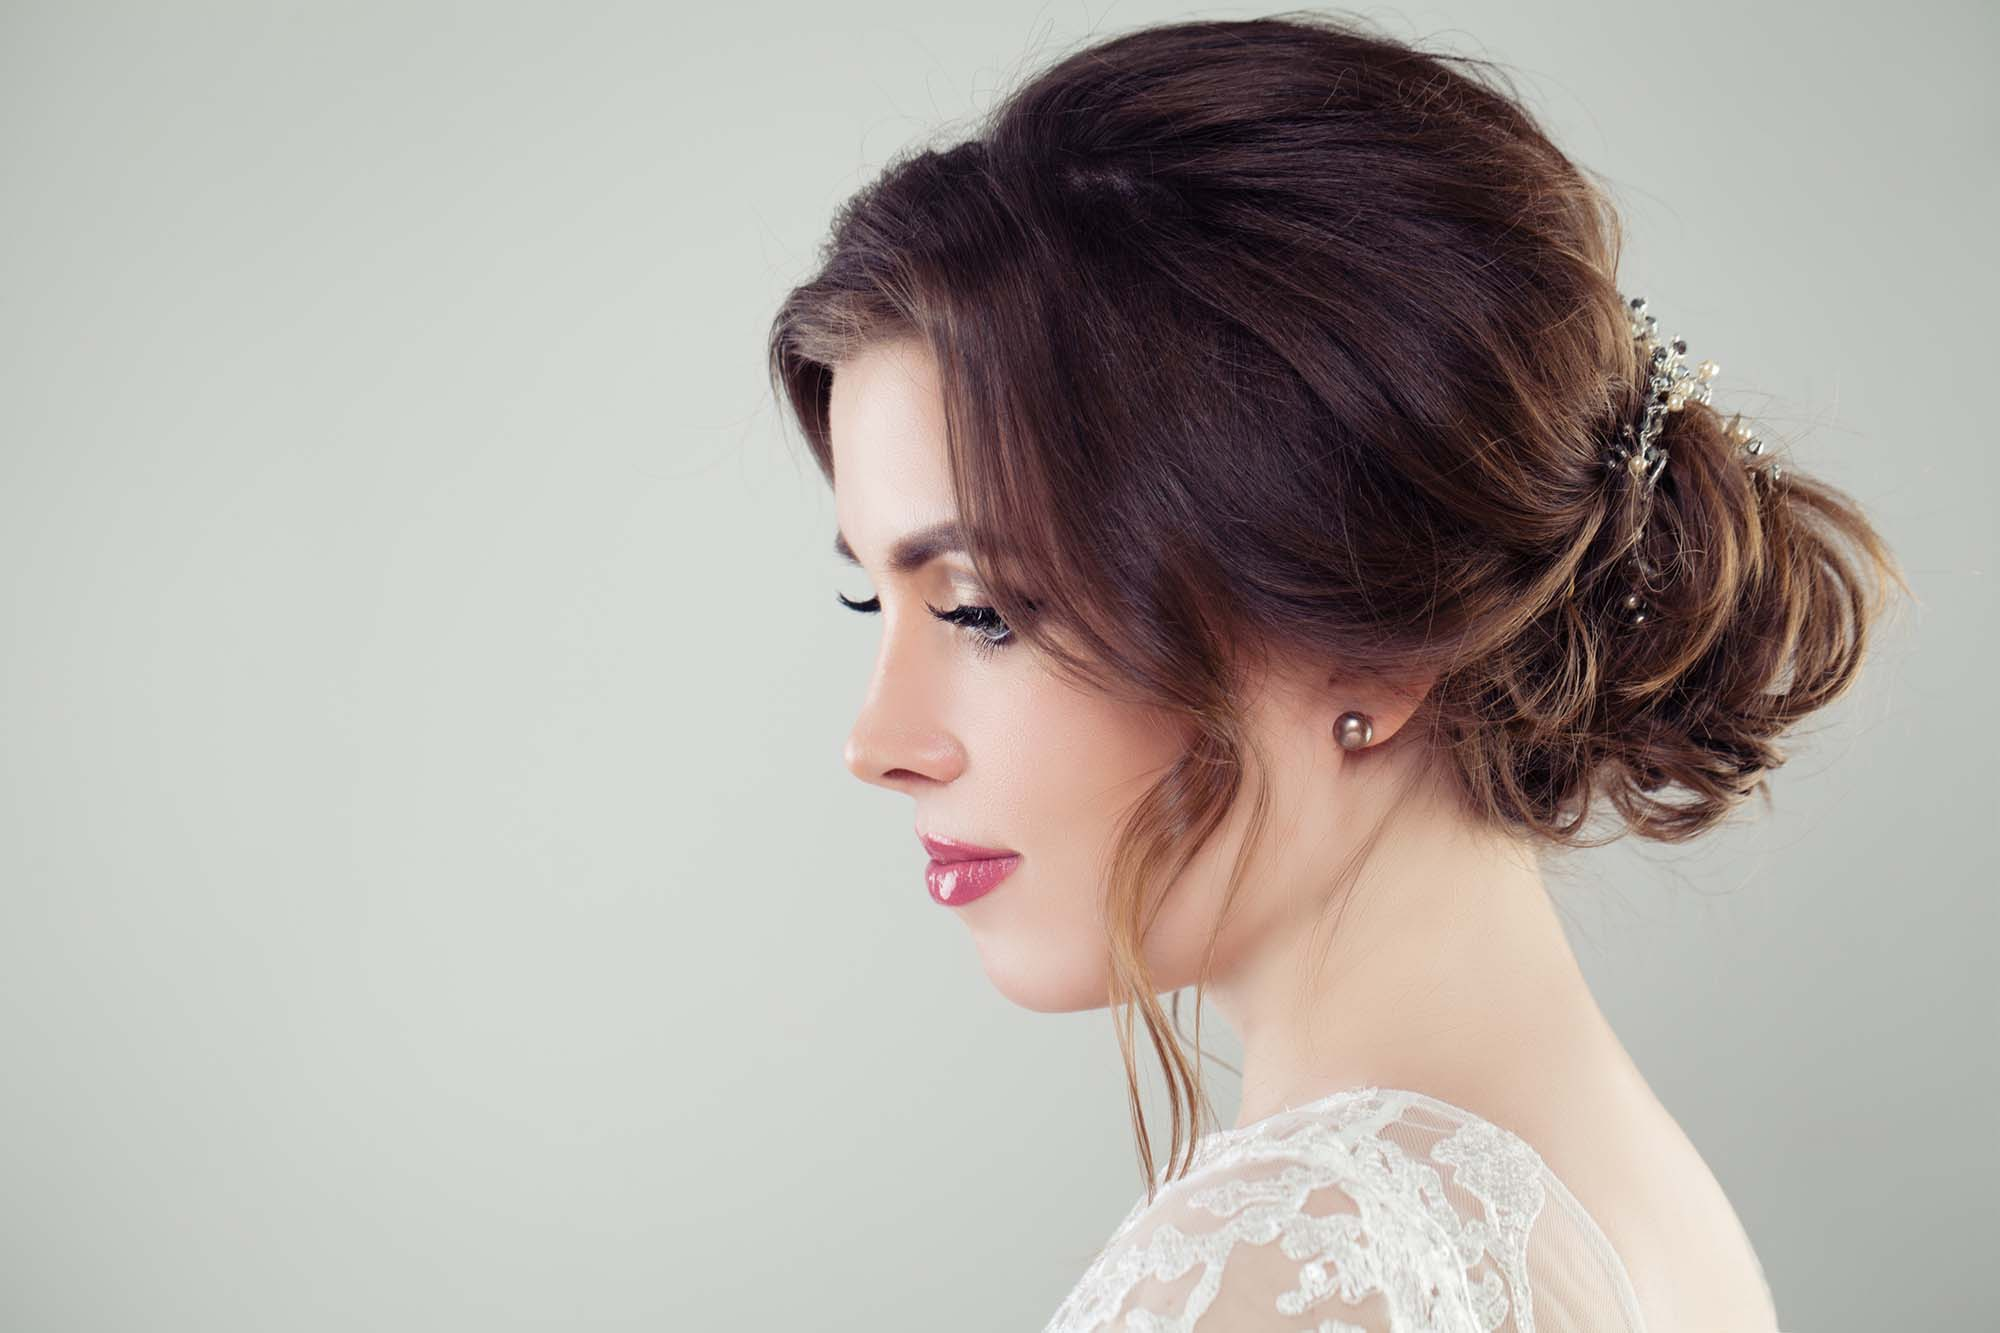 Pretty bride woman with bridal hair